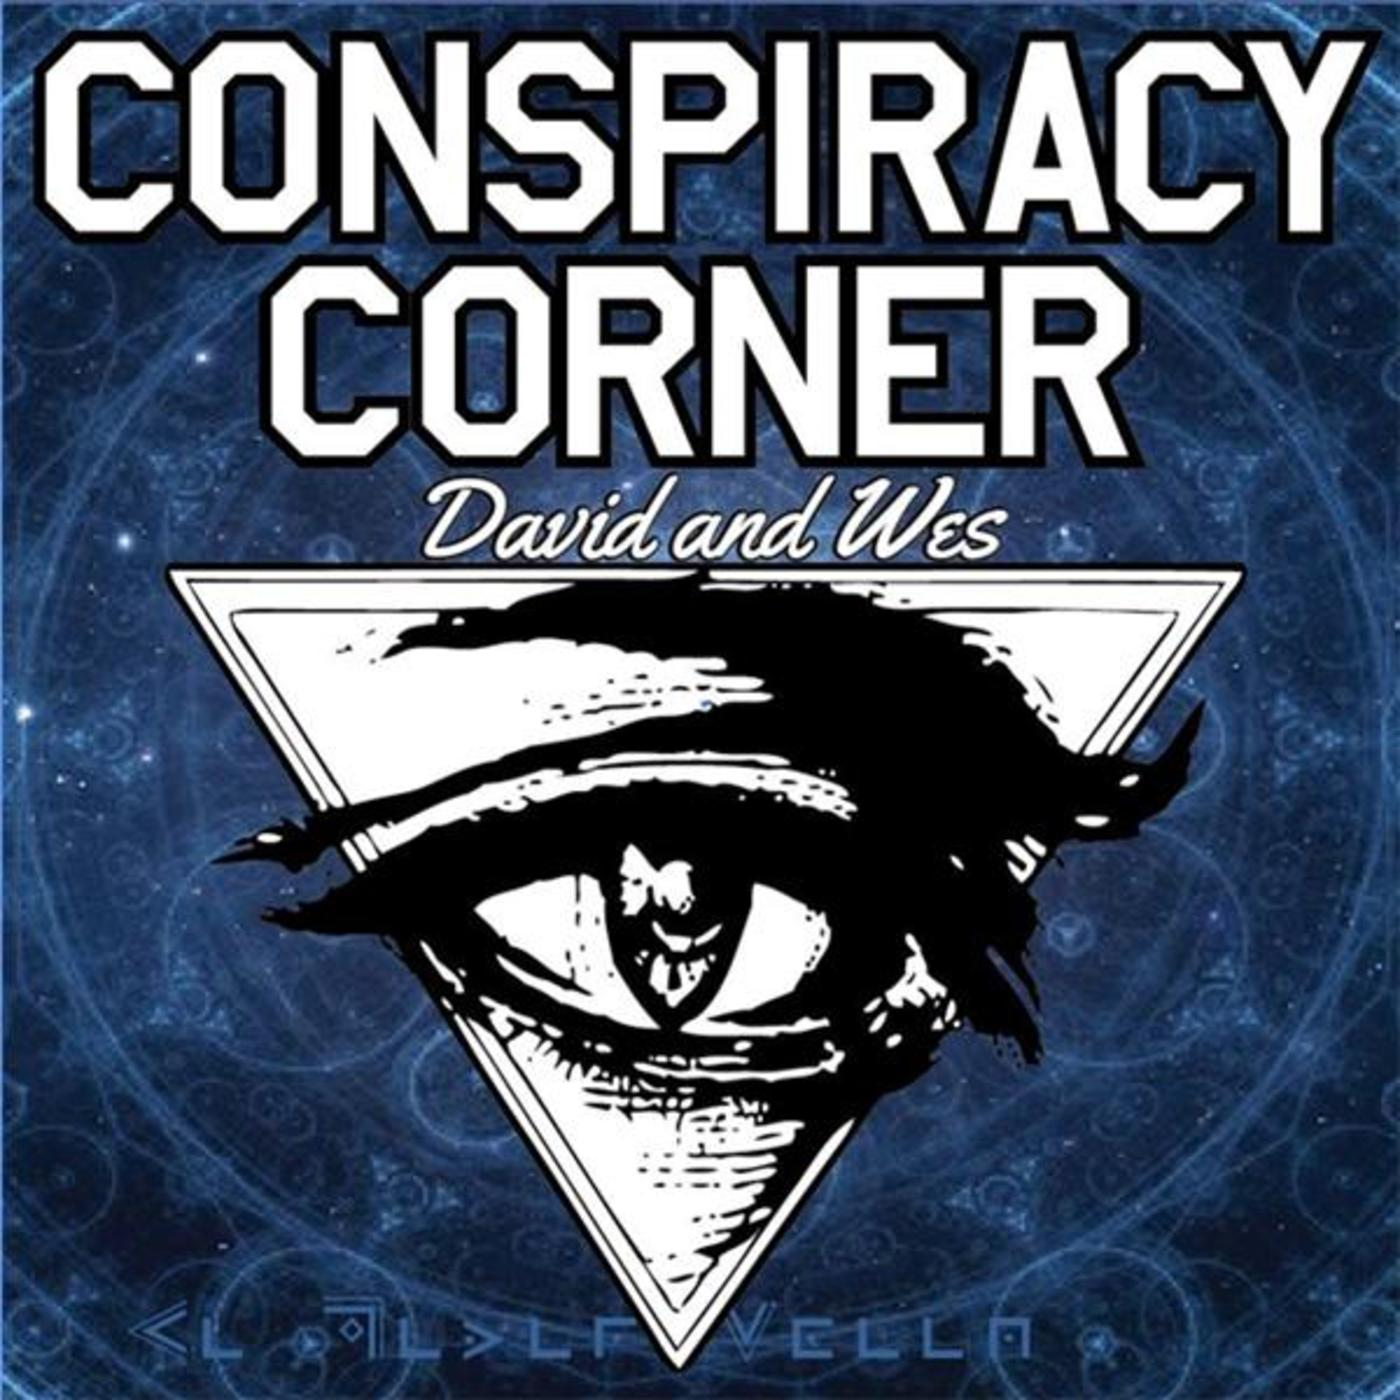 Conspiracy Corner - Dave and Wes